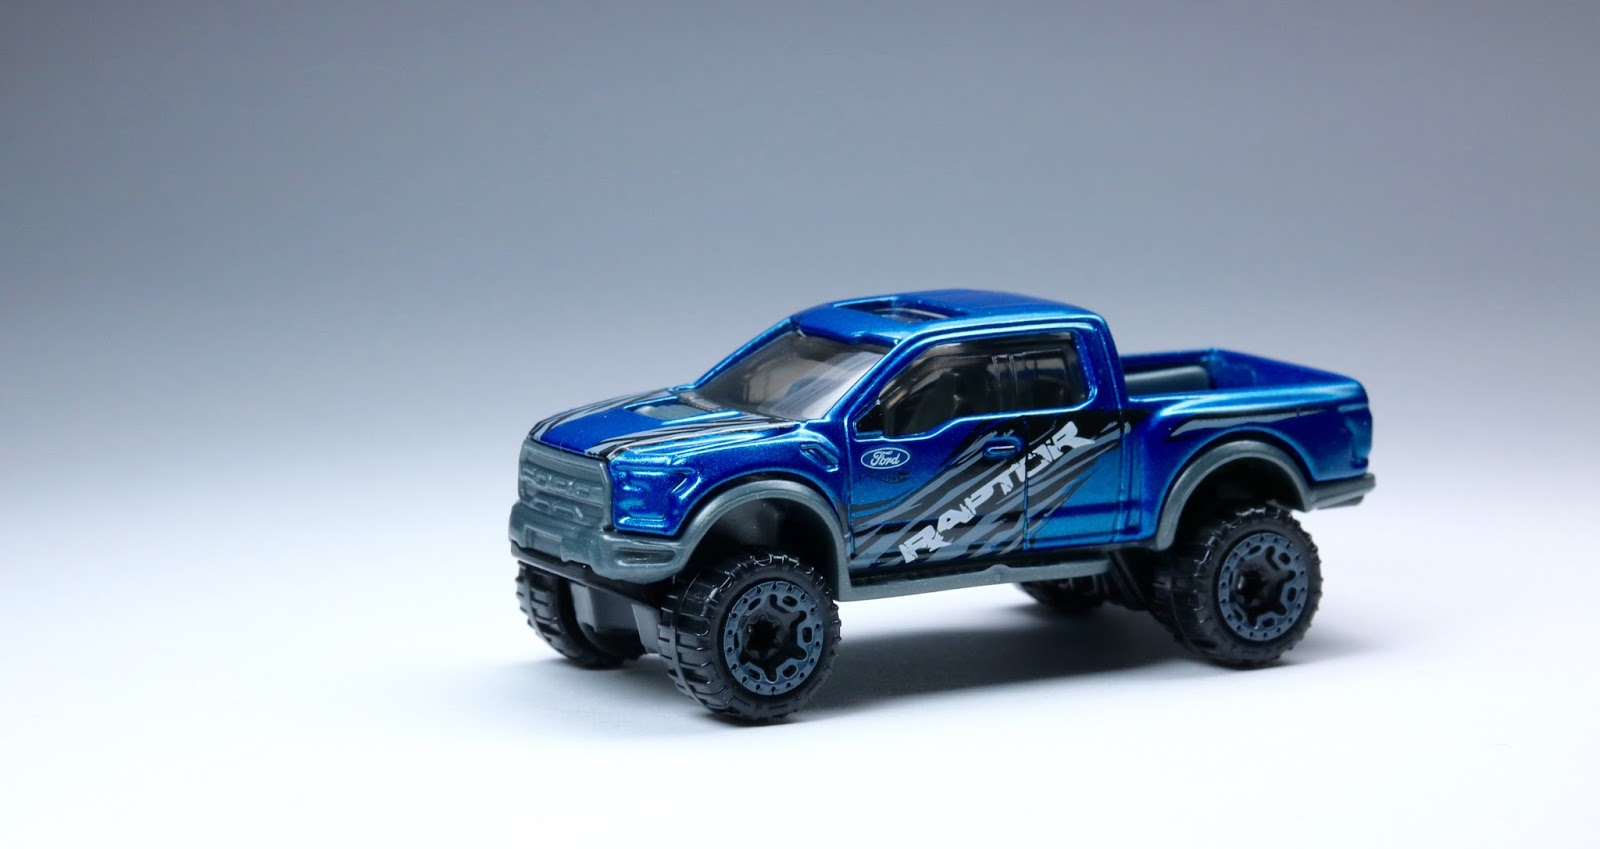 2018 Ford Raptor Hot Wheels | 2017 - 2018 Best Car Reviews